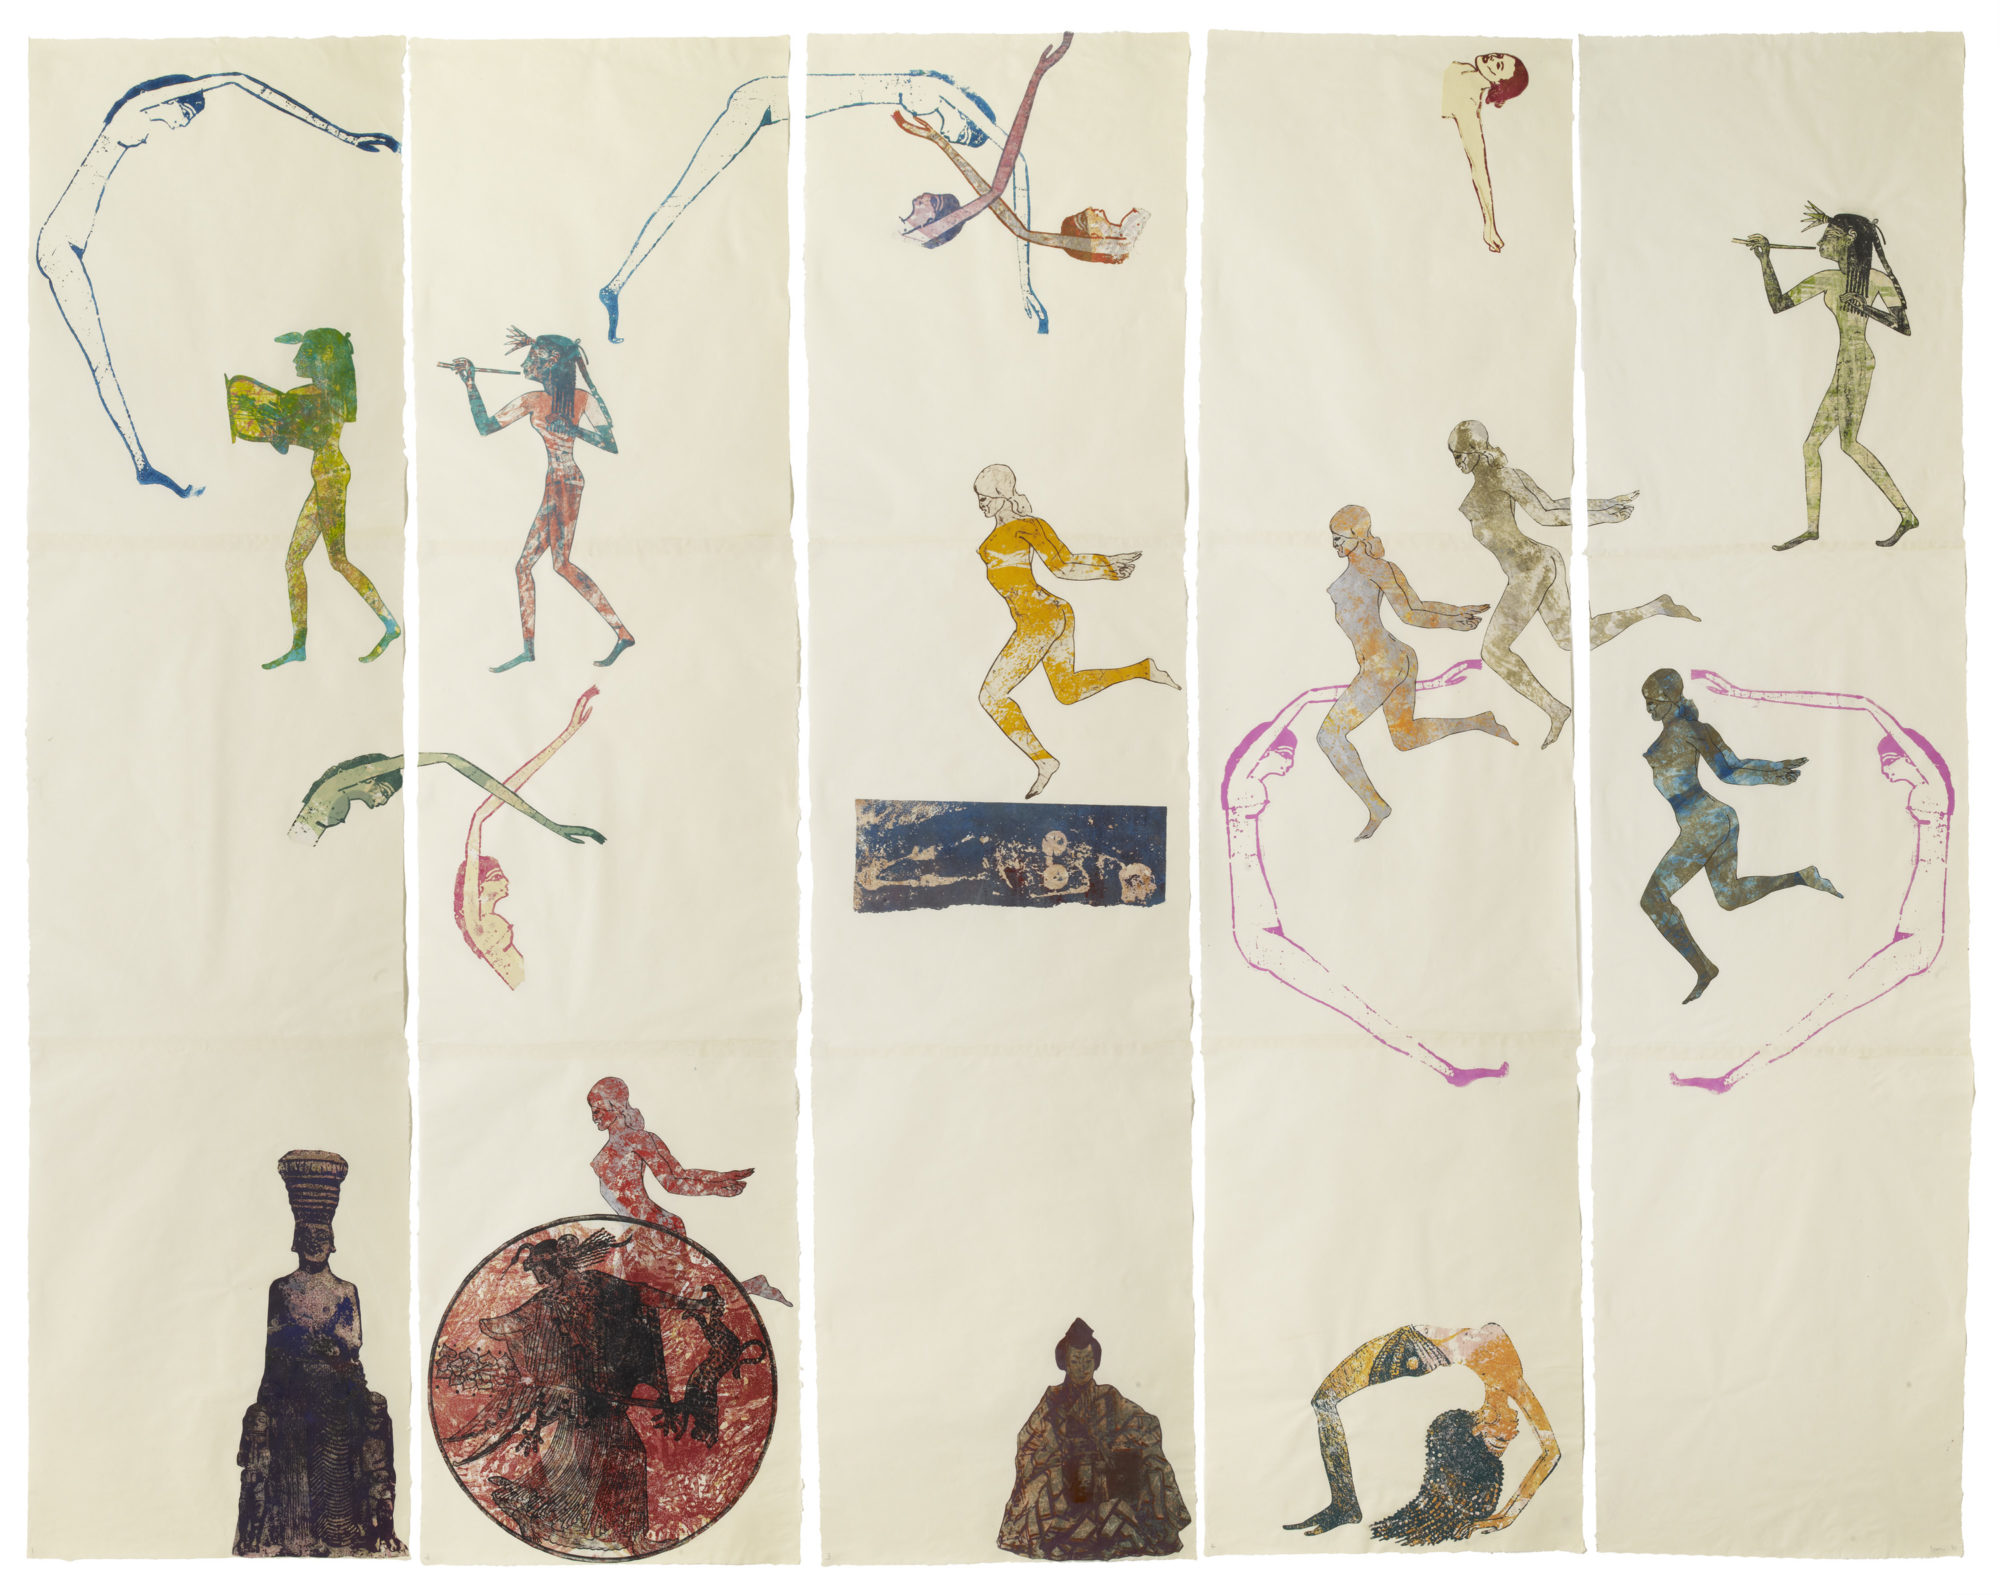 Nancy Spero. The Goddess Nut II. 1990 . Handprinting and printed collage on paper. Five panels: 213.4 x 279.4 cm (7 feet x 9 feet, 2 inches) overall. © 2019 The Nancy Spero and Leon Golub Foundation for the Arts/Licensed by VAGA at ARS, NY, courtesy Galerie Lelong & Co. Photo: Michael Bodycomb